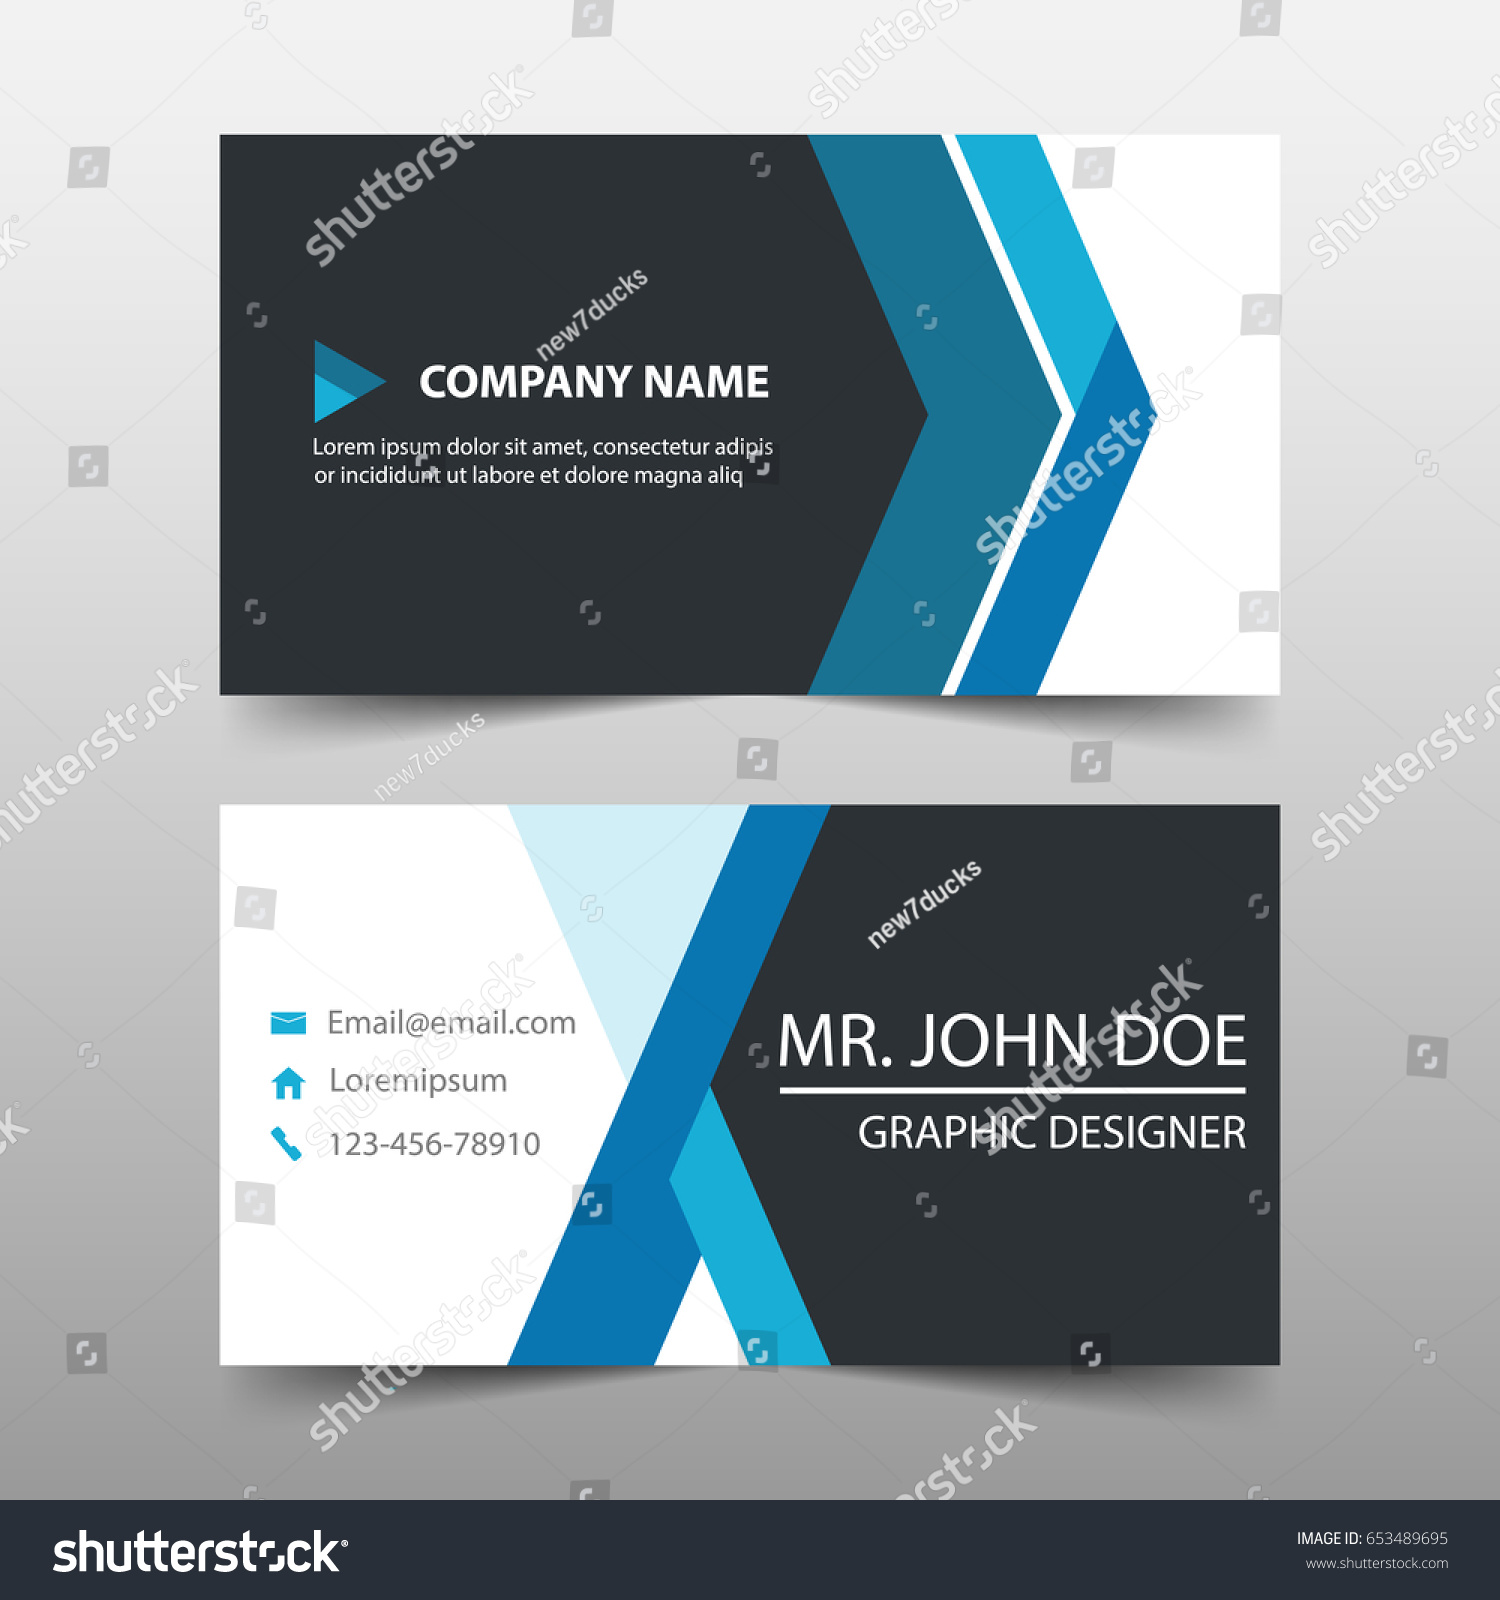 Business Card Template Microsoft Office